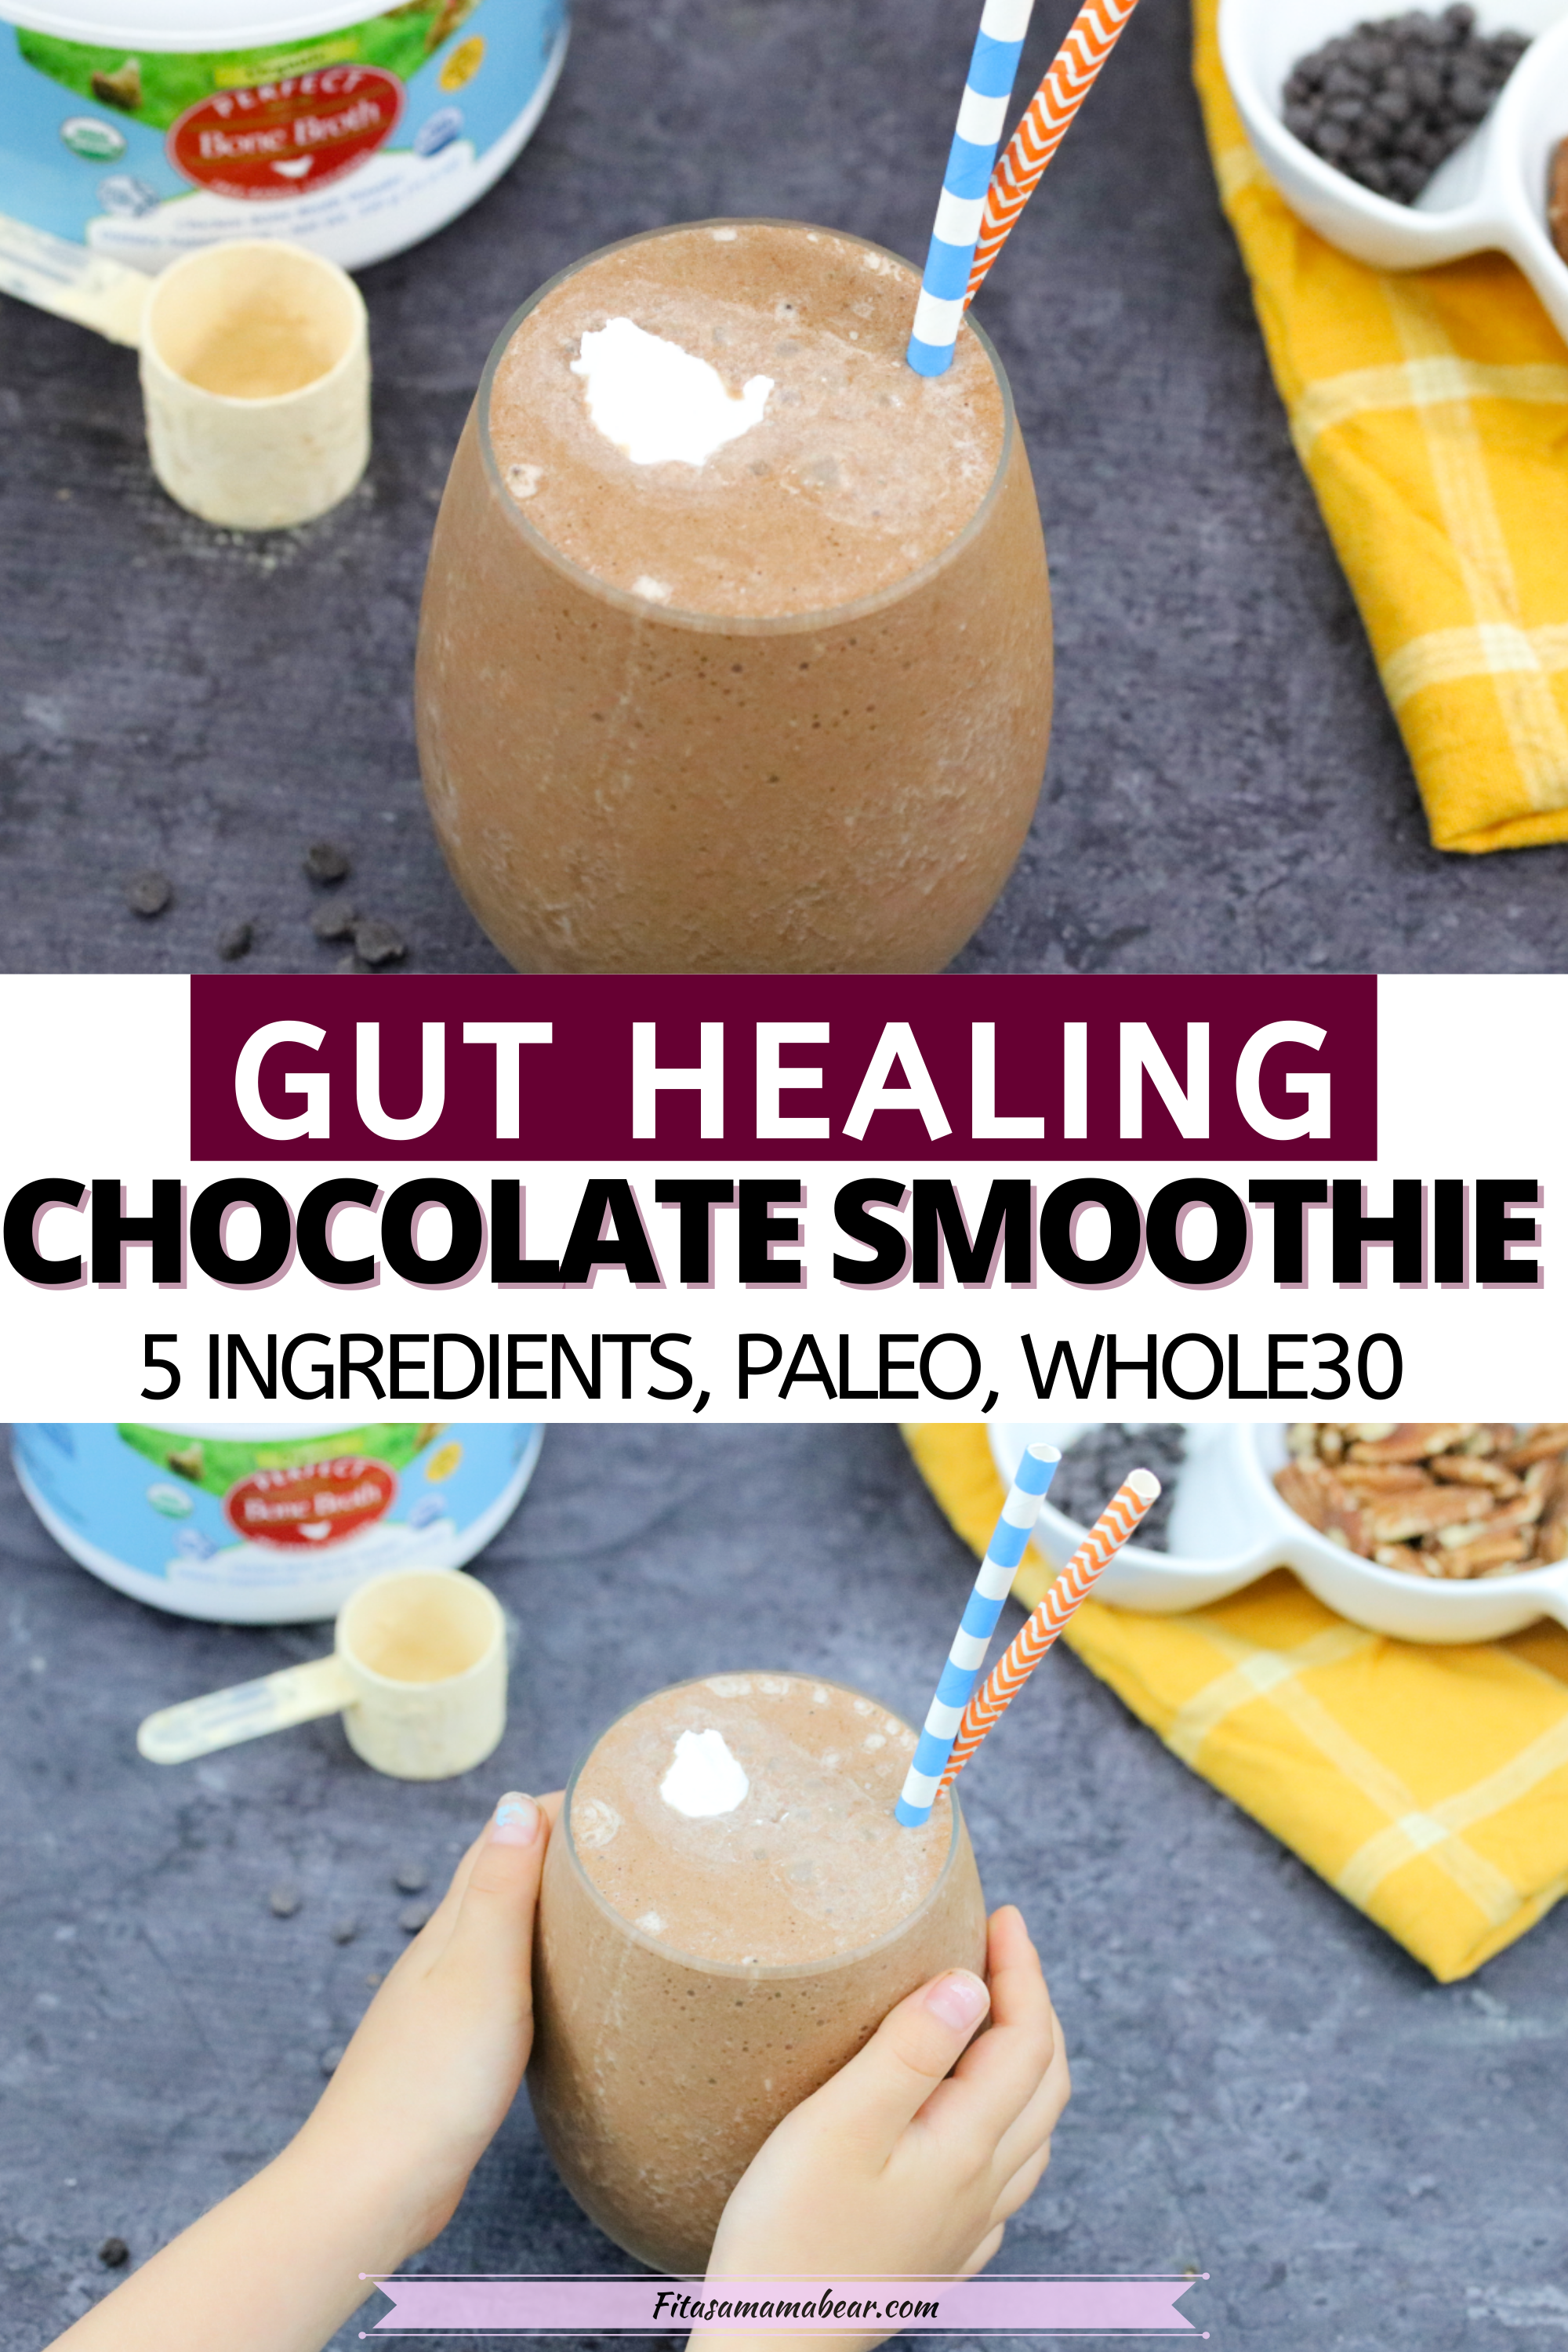 Pinterest image with text: vegan chocolate smoothie in a glass with blue and orange straw